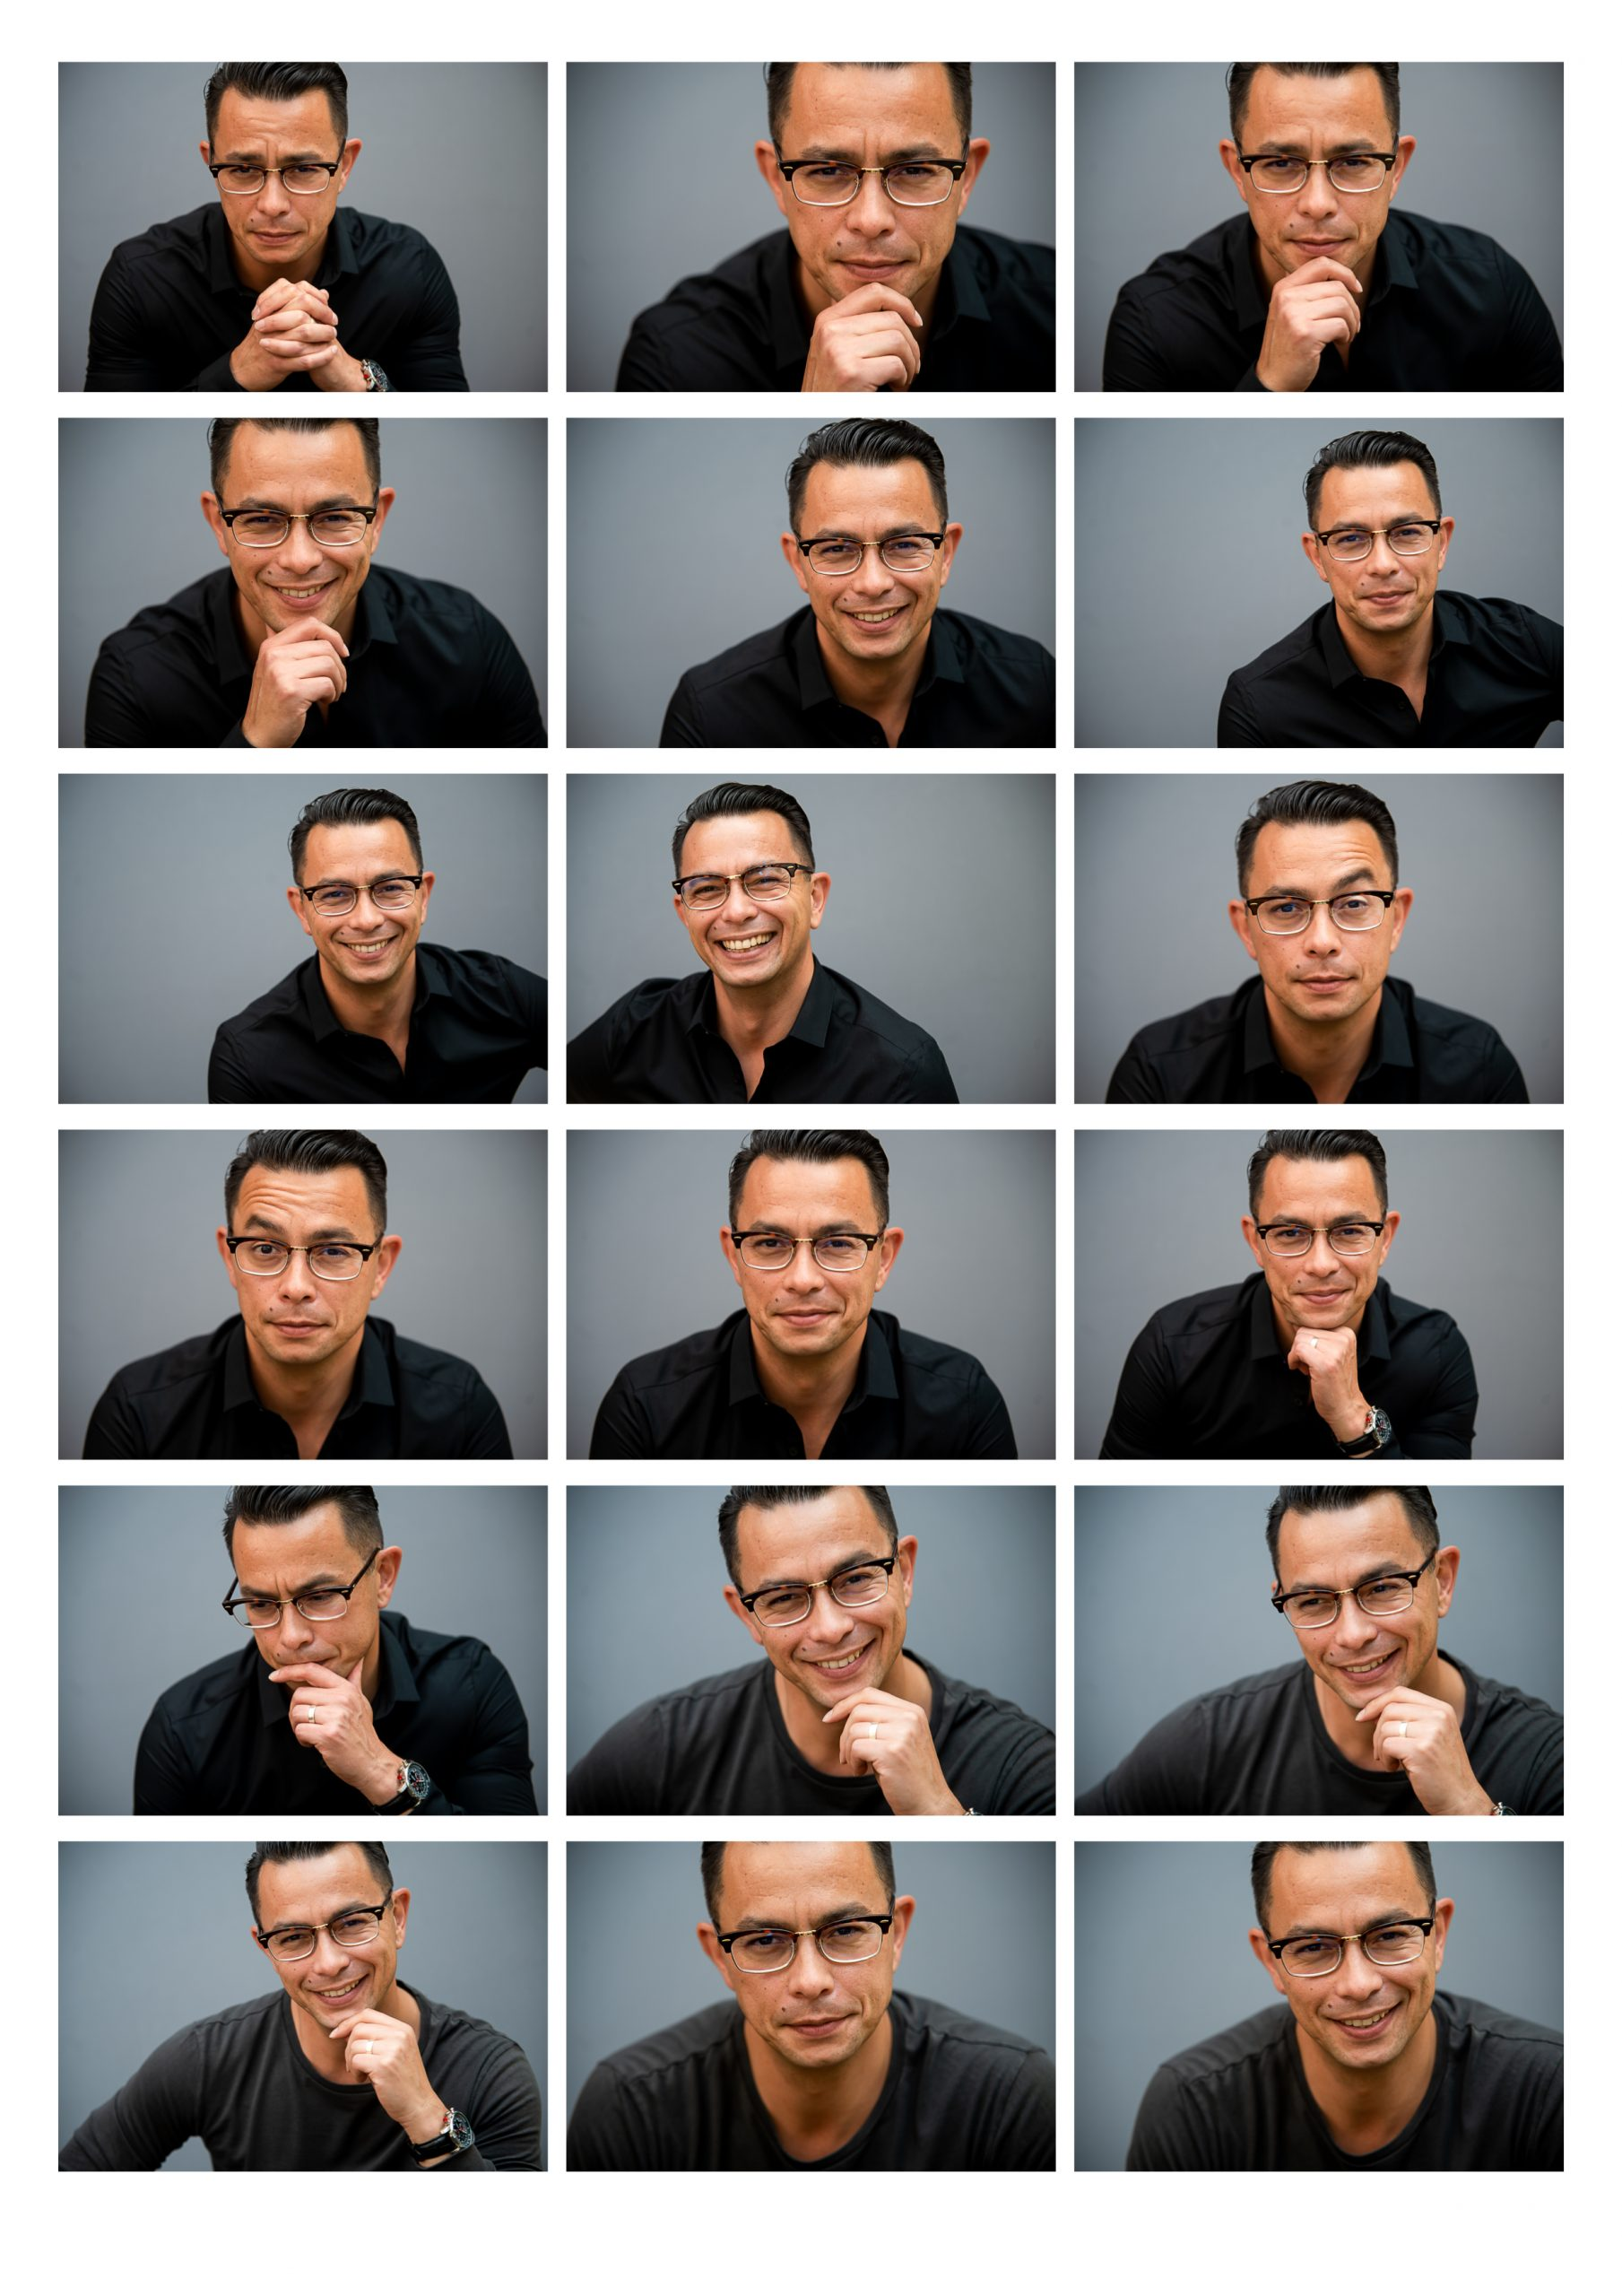 how many photographs do you get from a headshot session